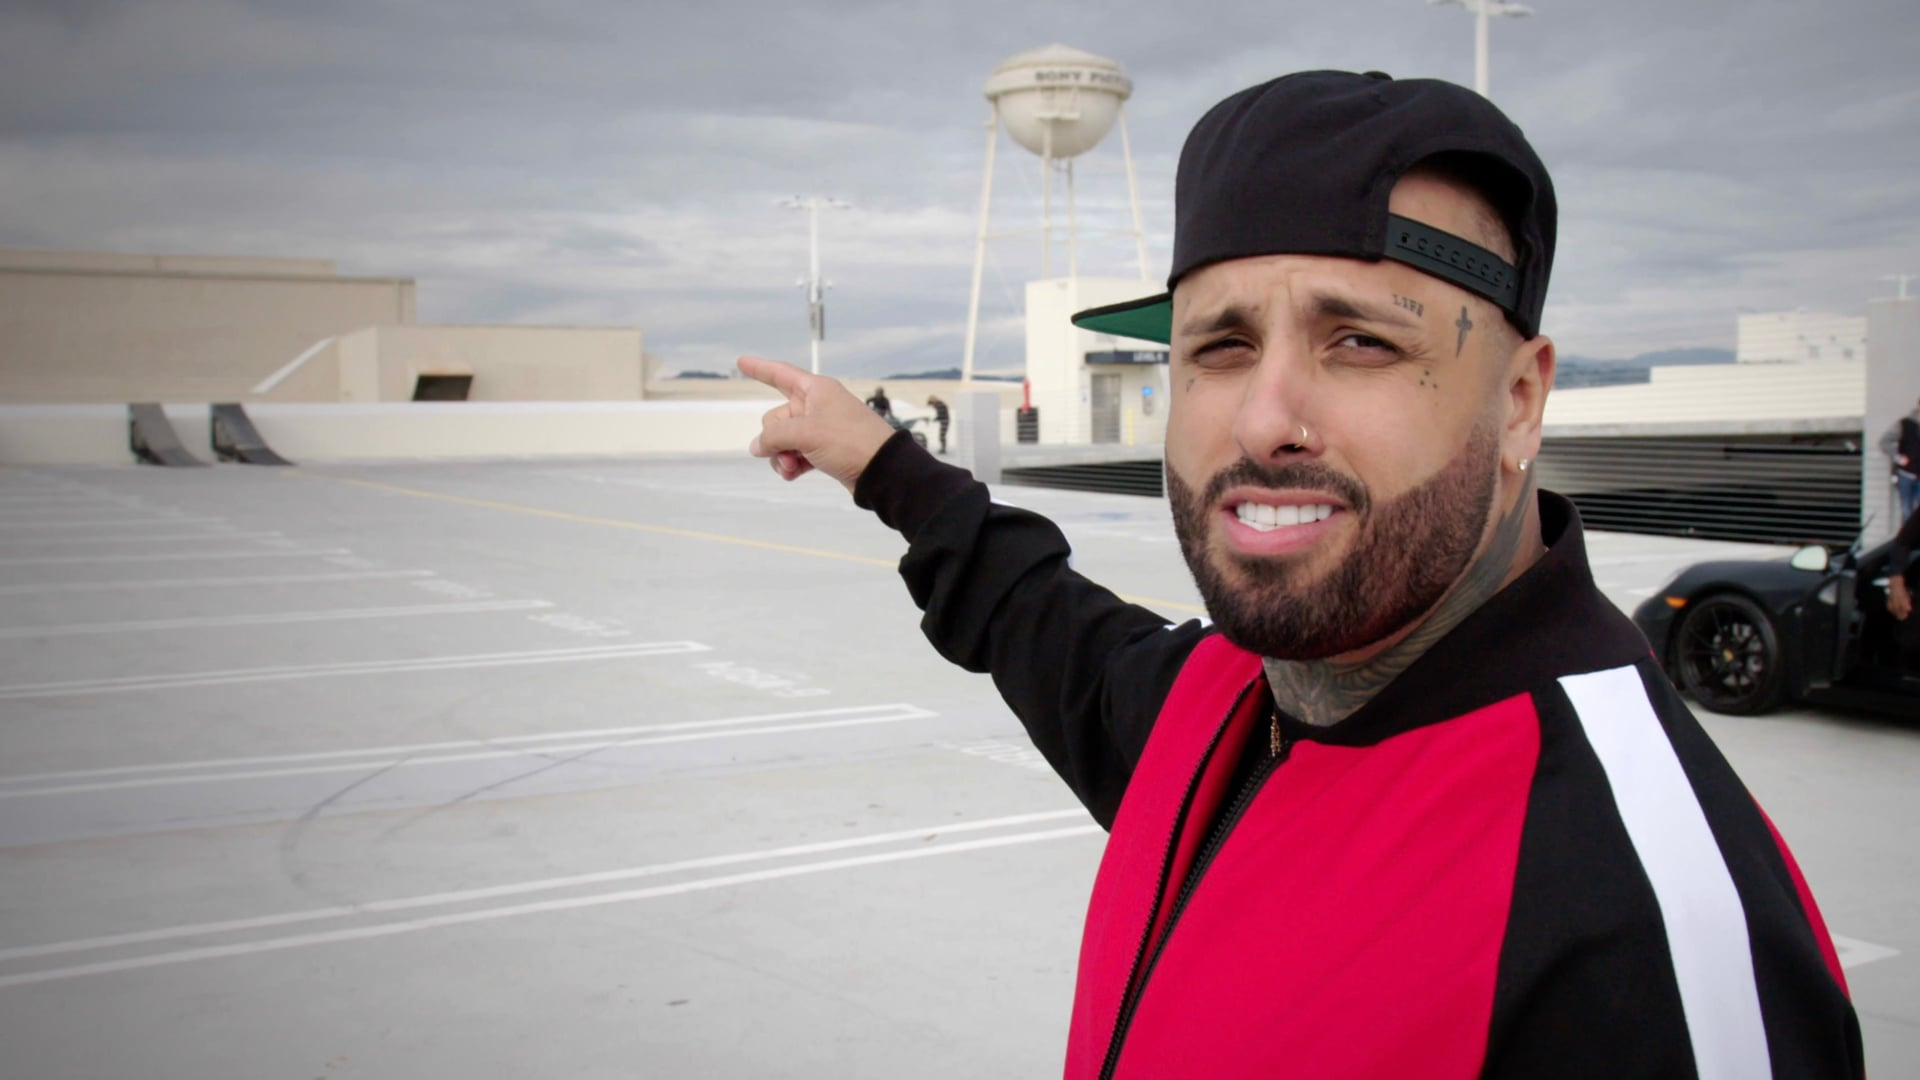 A Sony Collaboration | Nicky Jam x Bad Boys For Life - Behind the Scenes